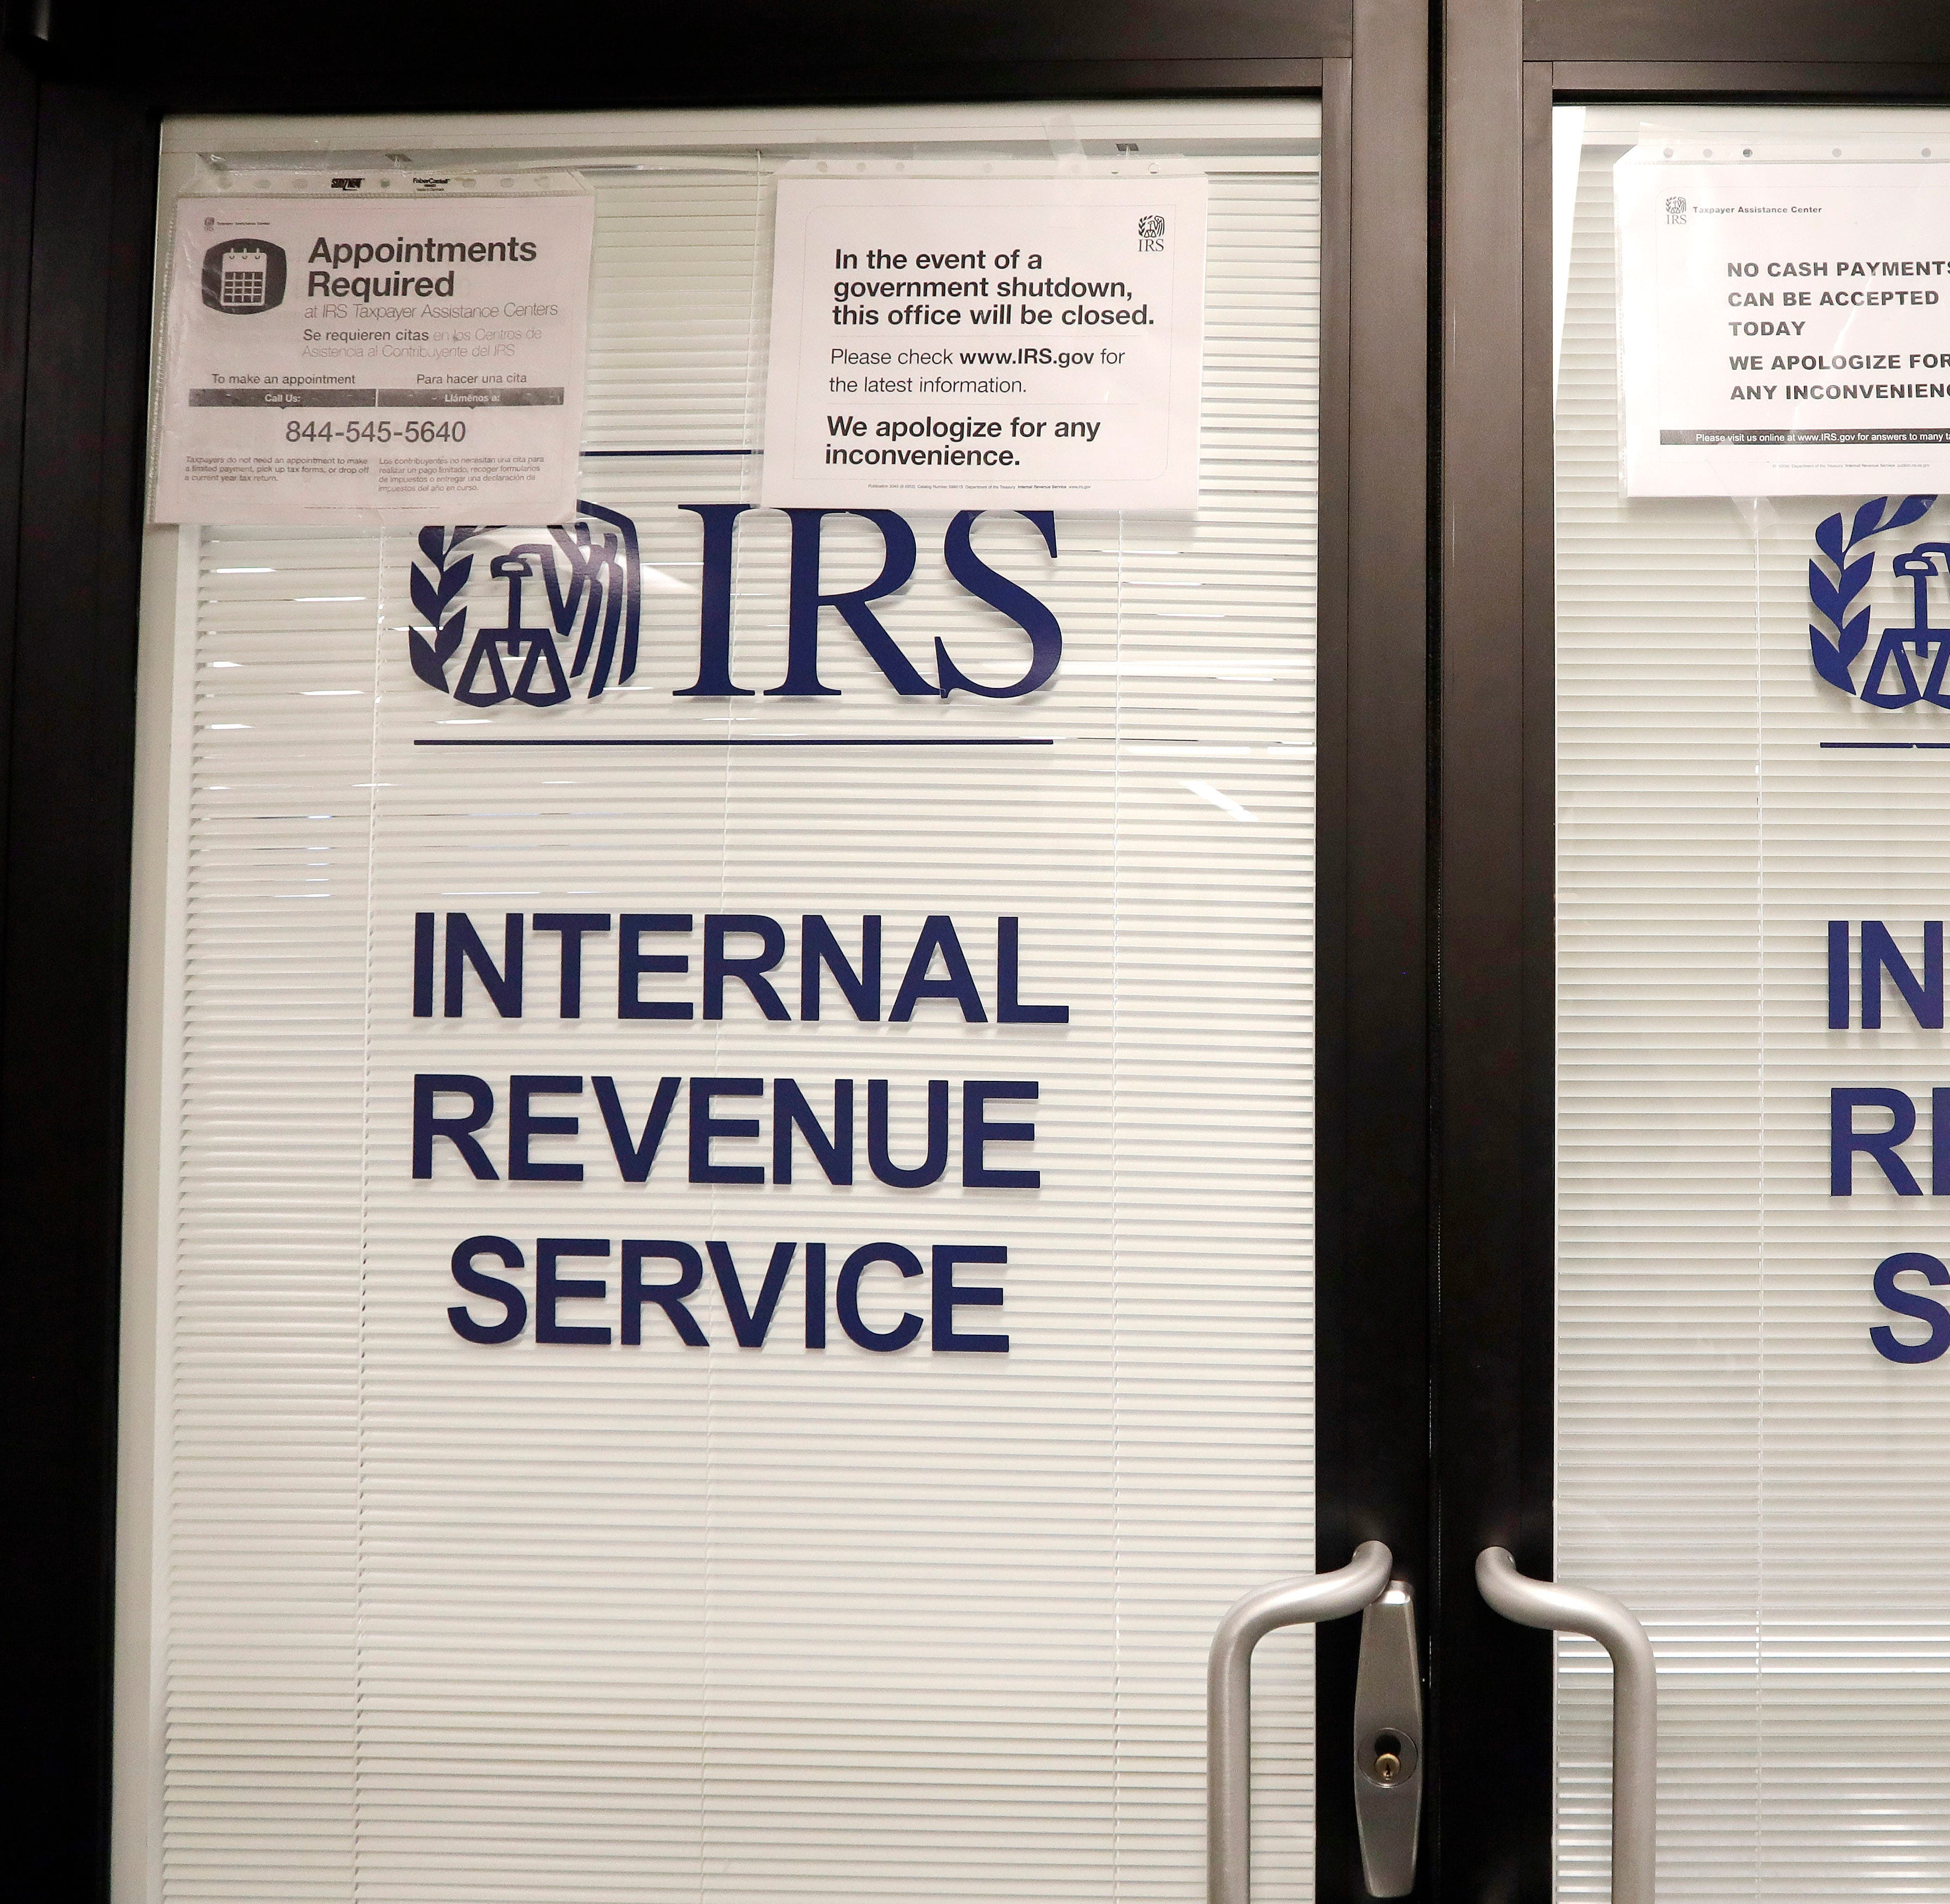 Government shutdown stymied frozen tax refunds, tied up IRS phone lines, report shows